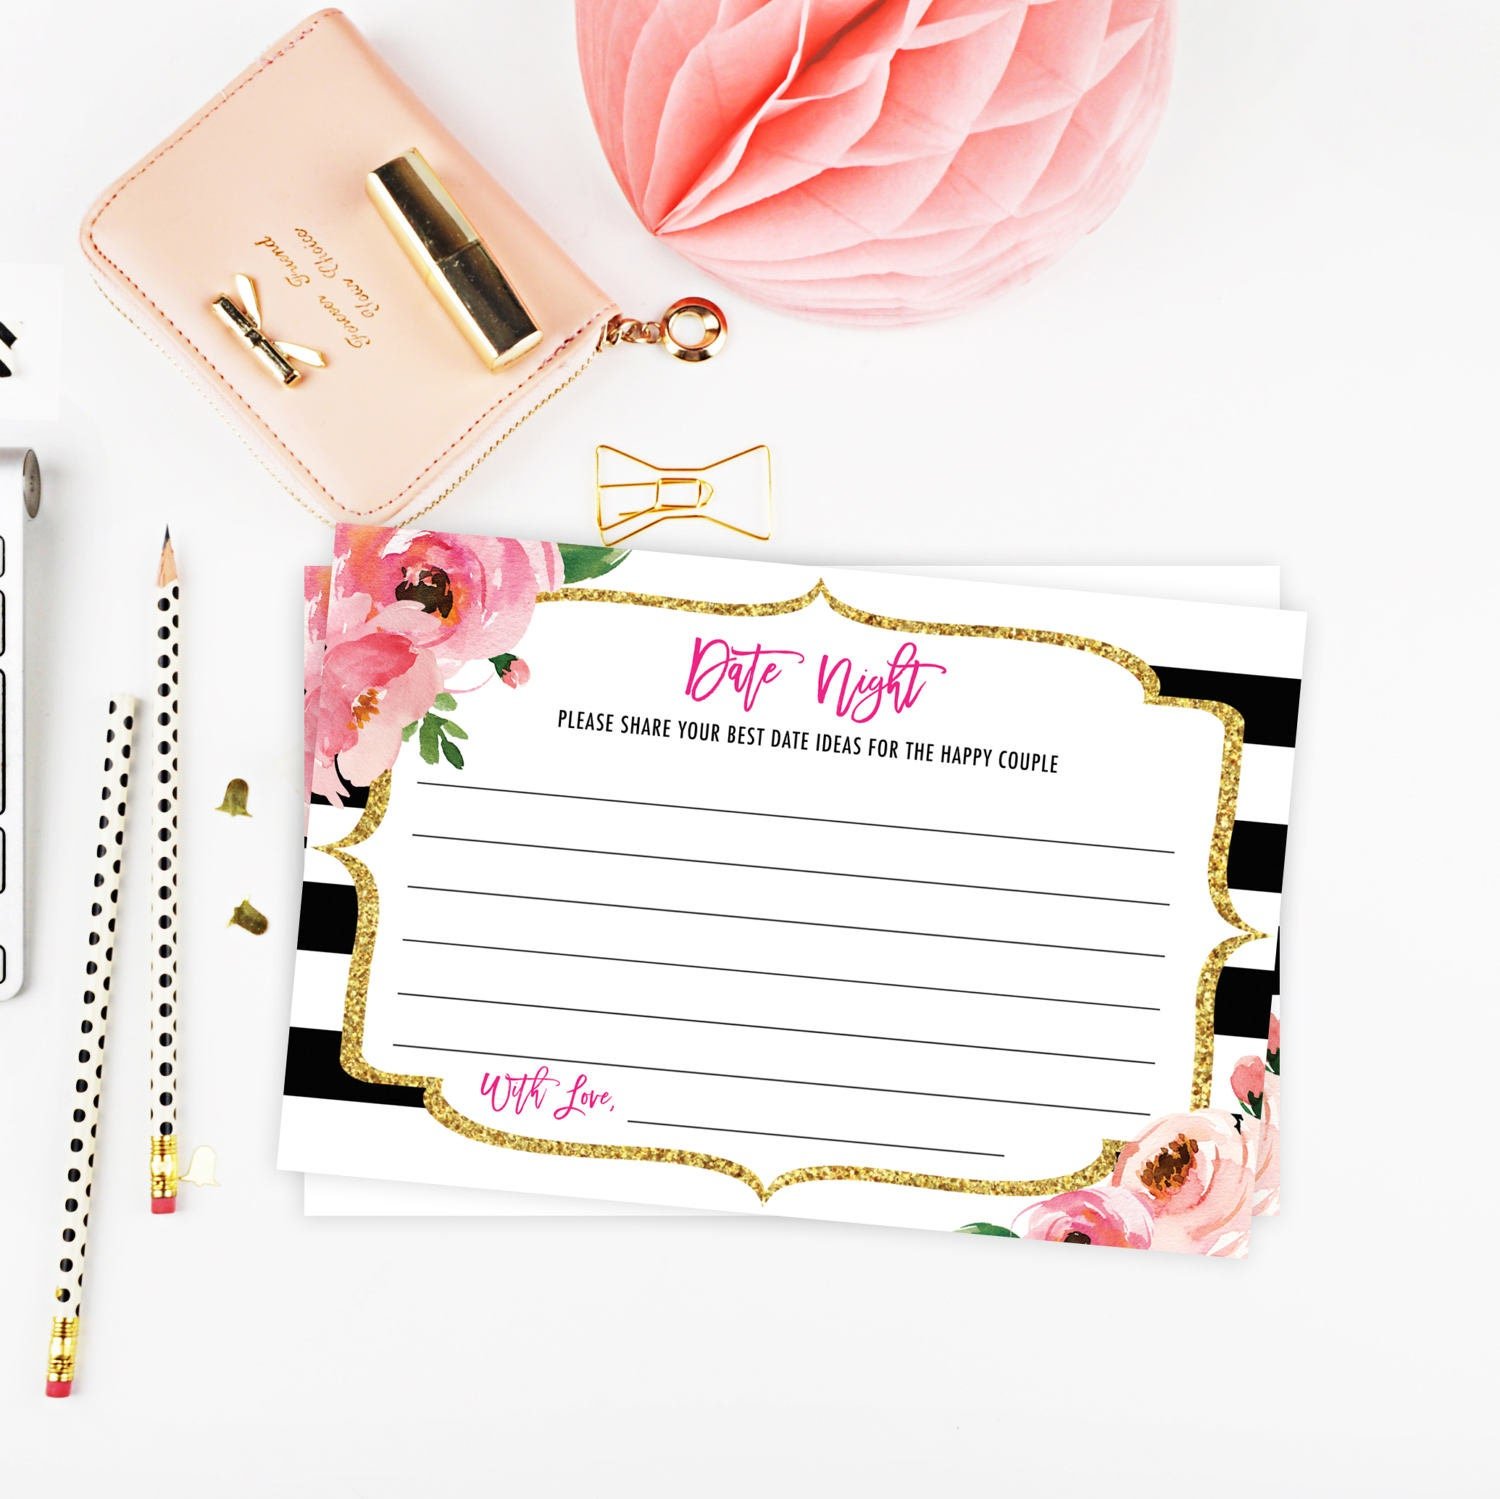 Date Night Cards Printable Wedding Date Night Ideas For